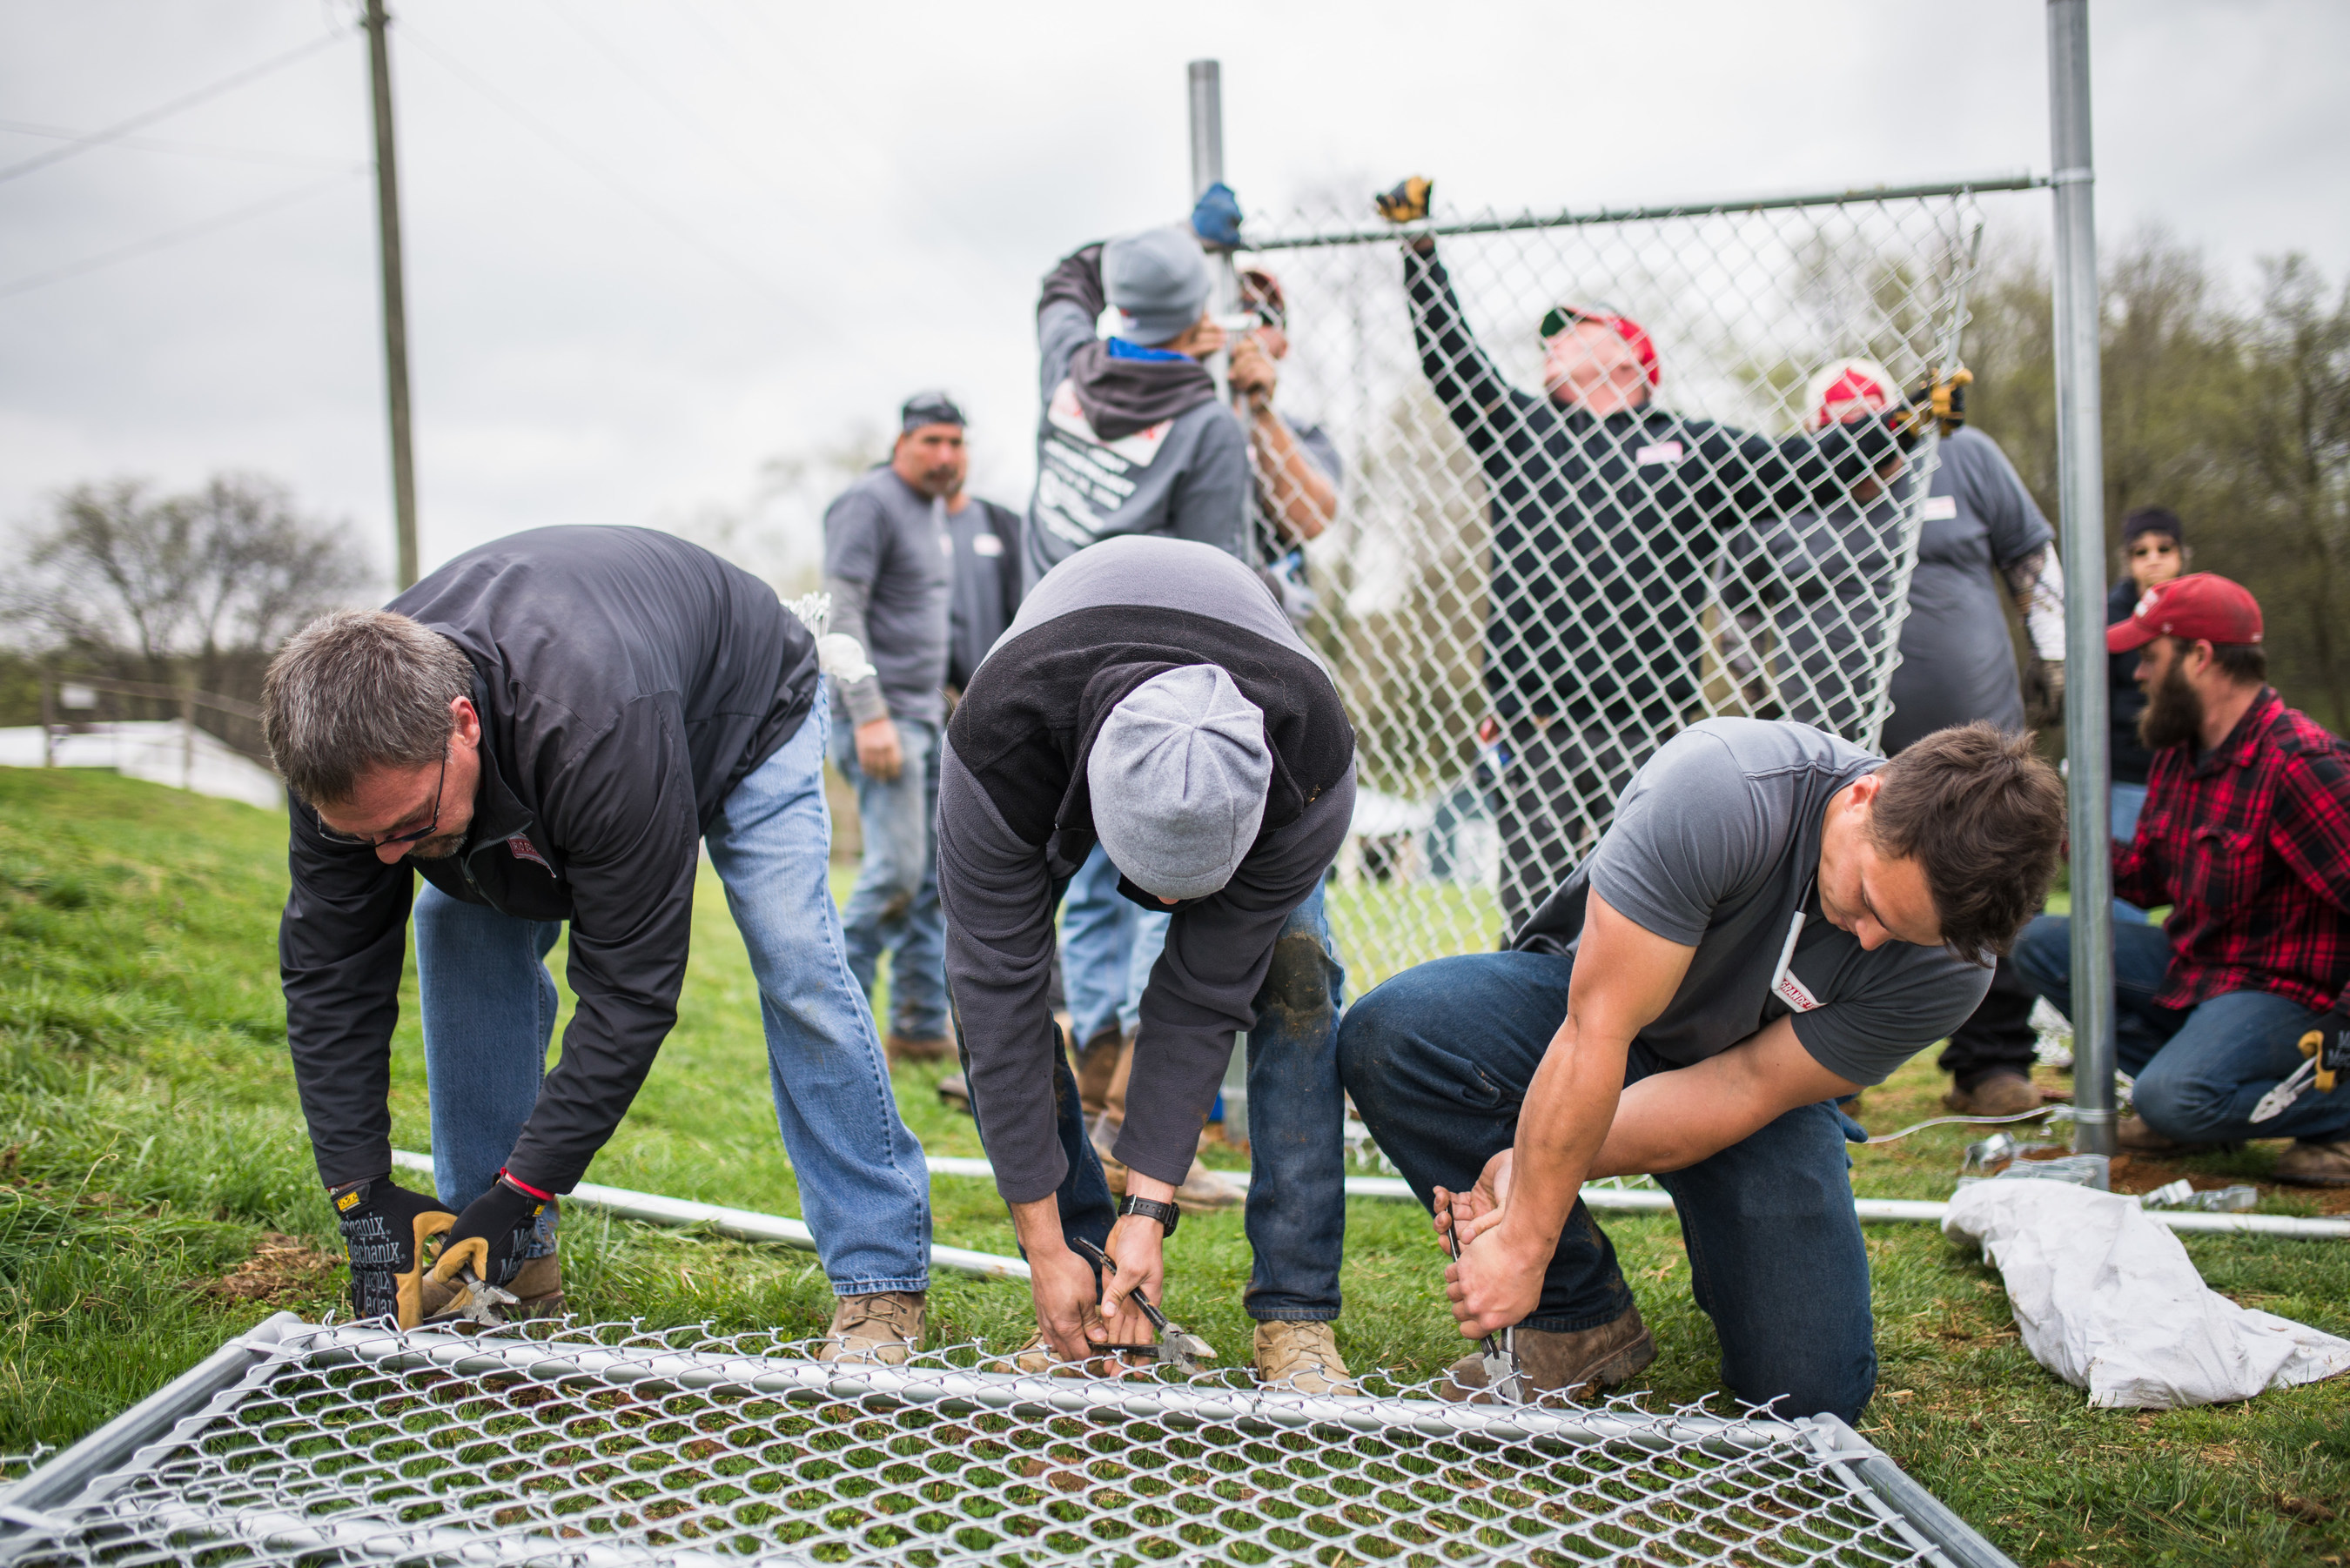 Rio Grande Fence Co. of Nashville employees work together on 2016 Good Friday Service Project